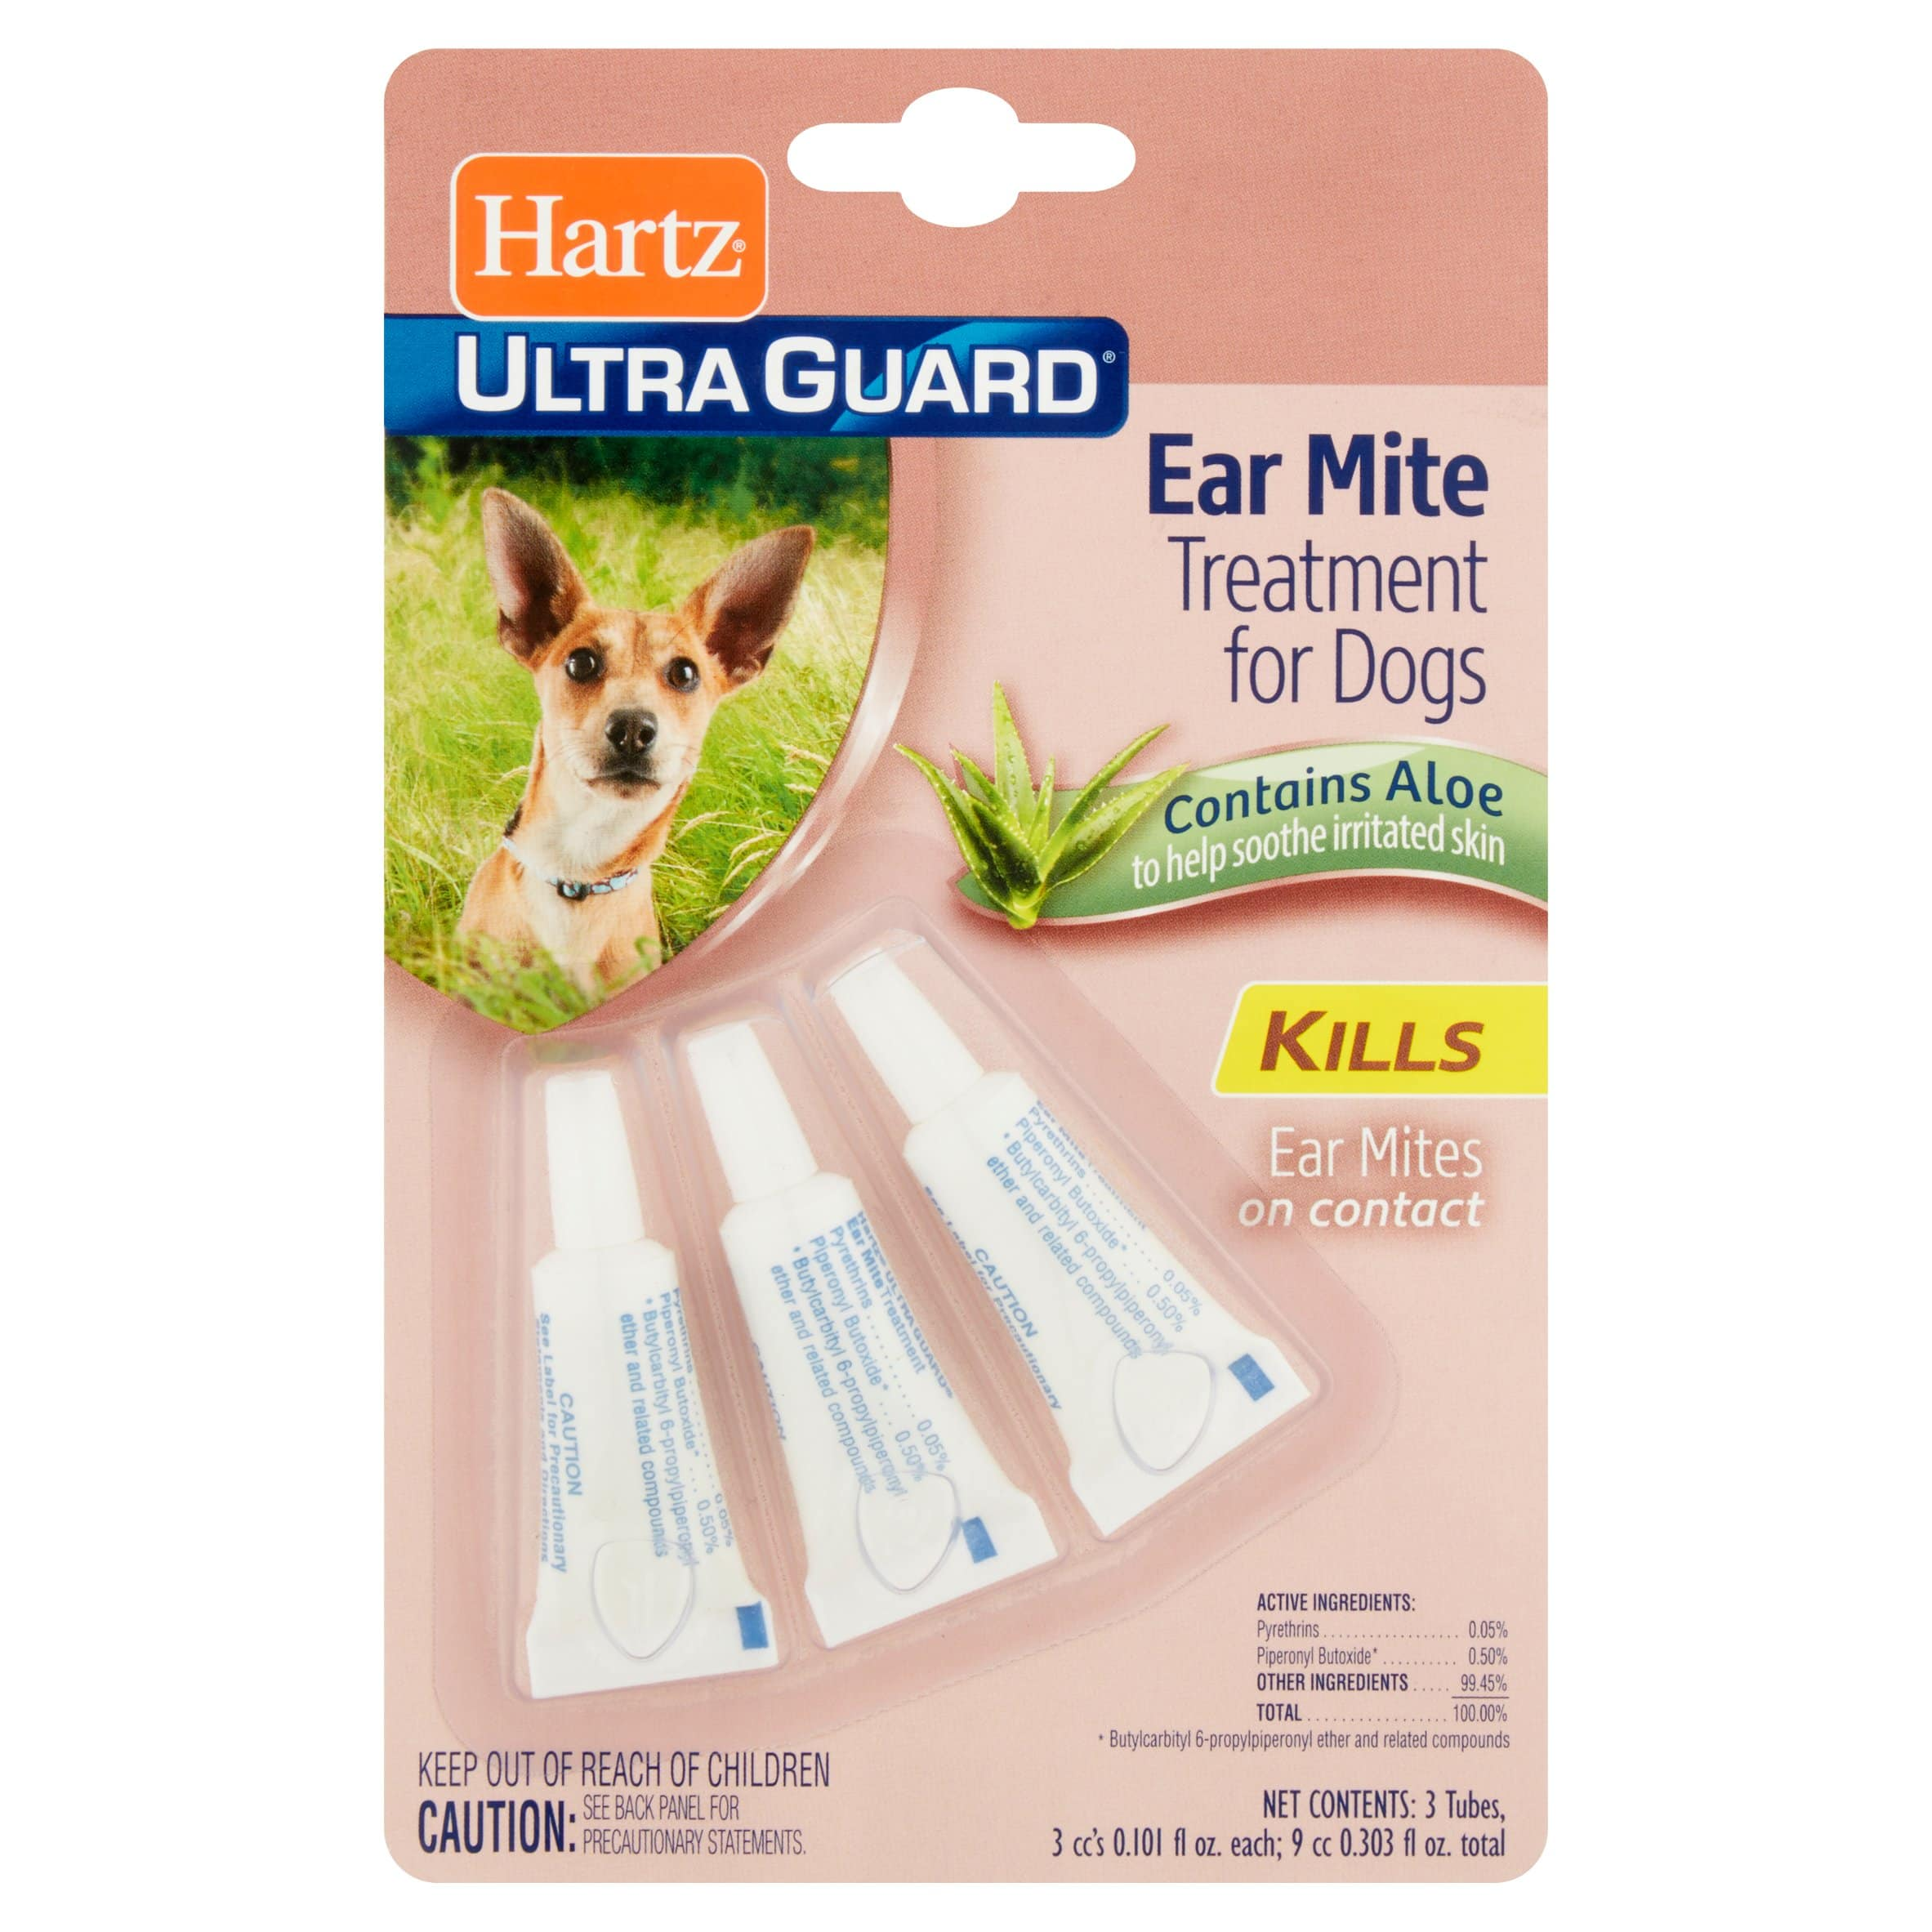 3-Count Hartz Ultraguard Ear Mite Treatment For Dogs $0.94 w/ S&S (or $0.99 at Walmart)